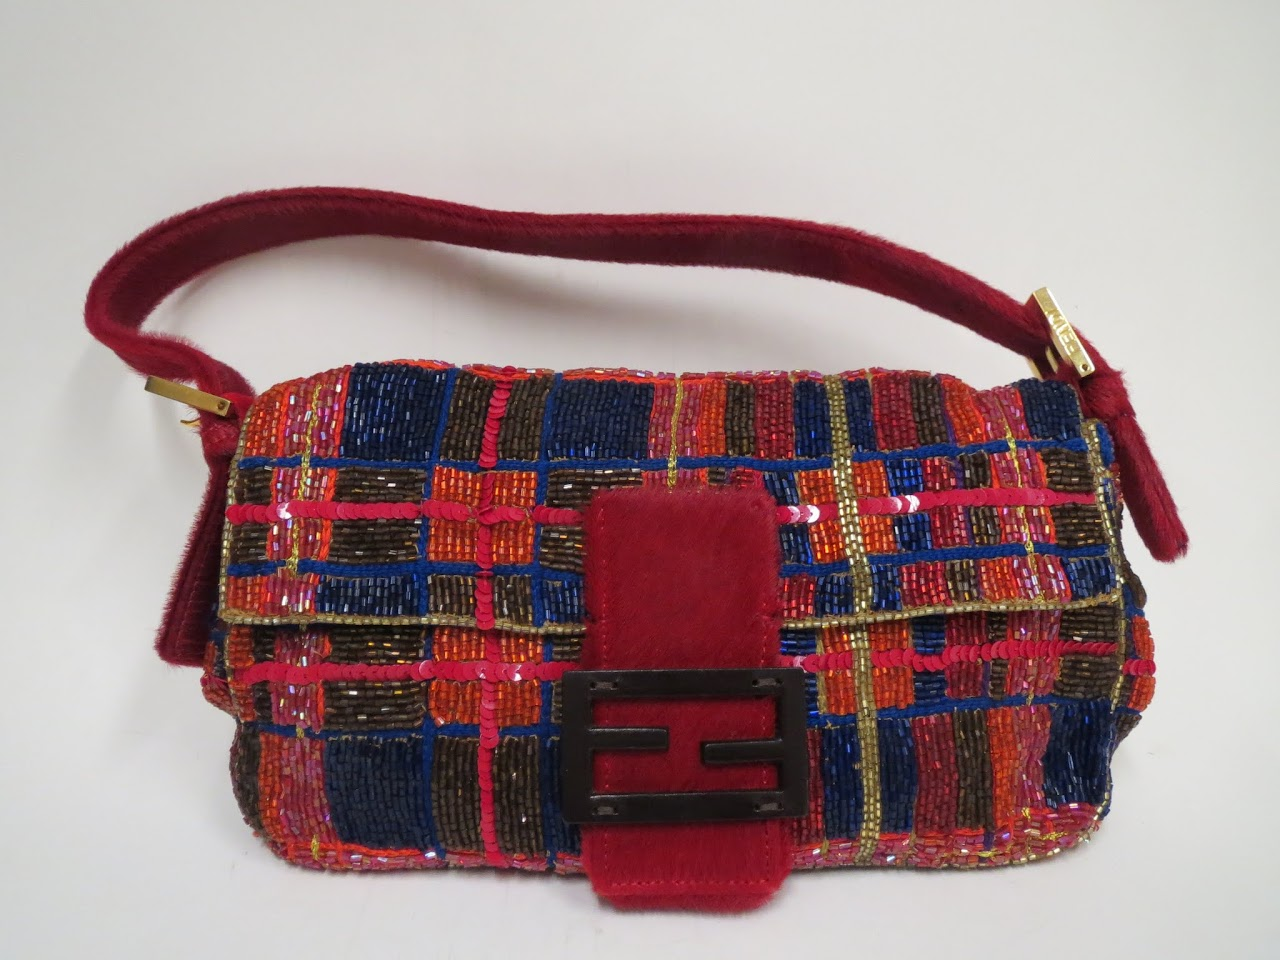 Fendi Beaded Evening Bag